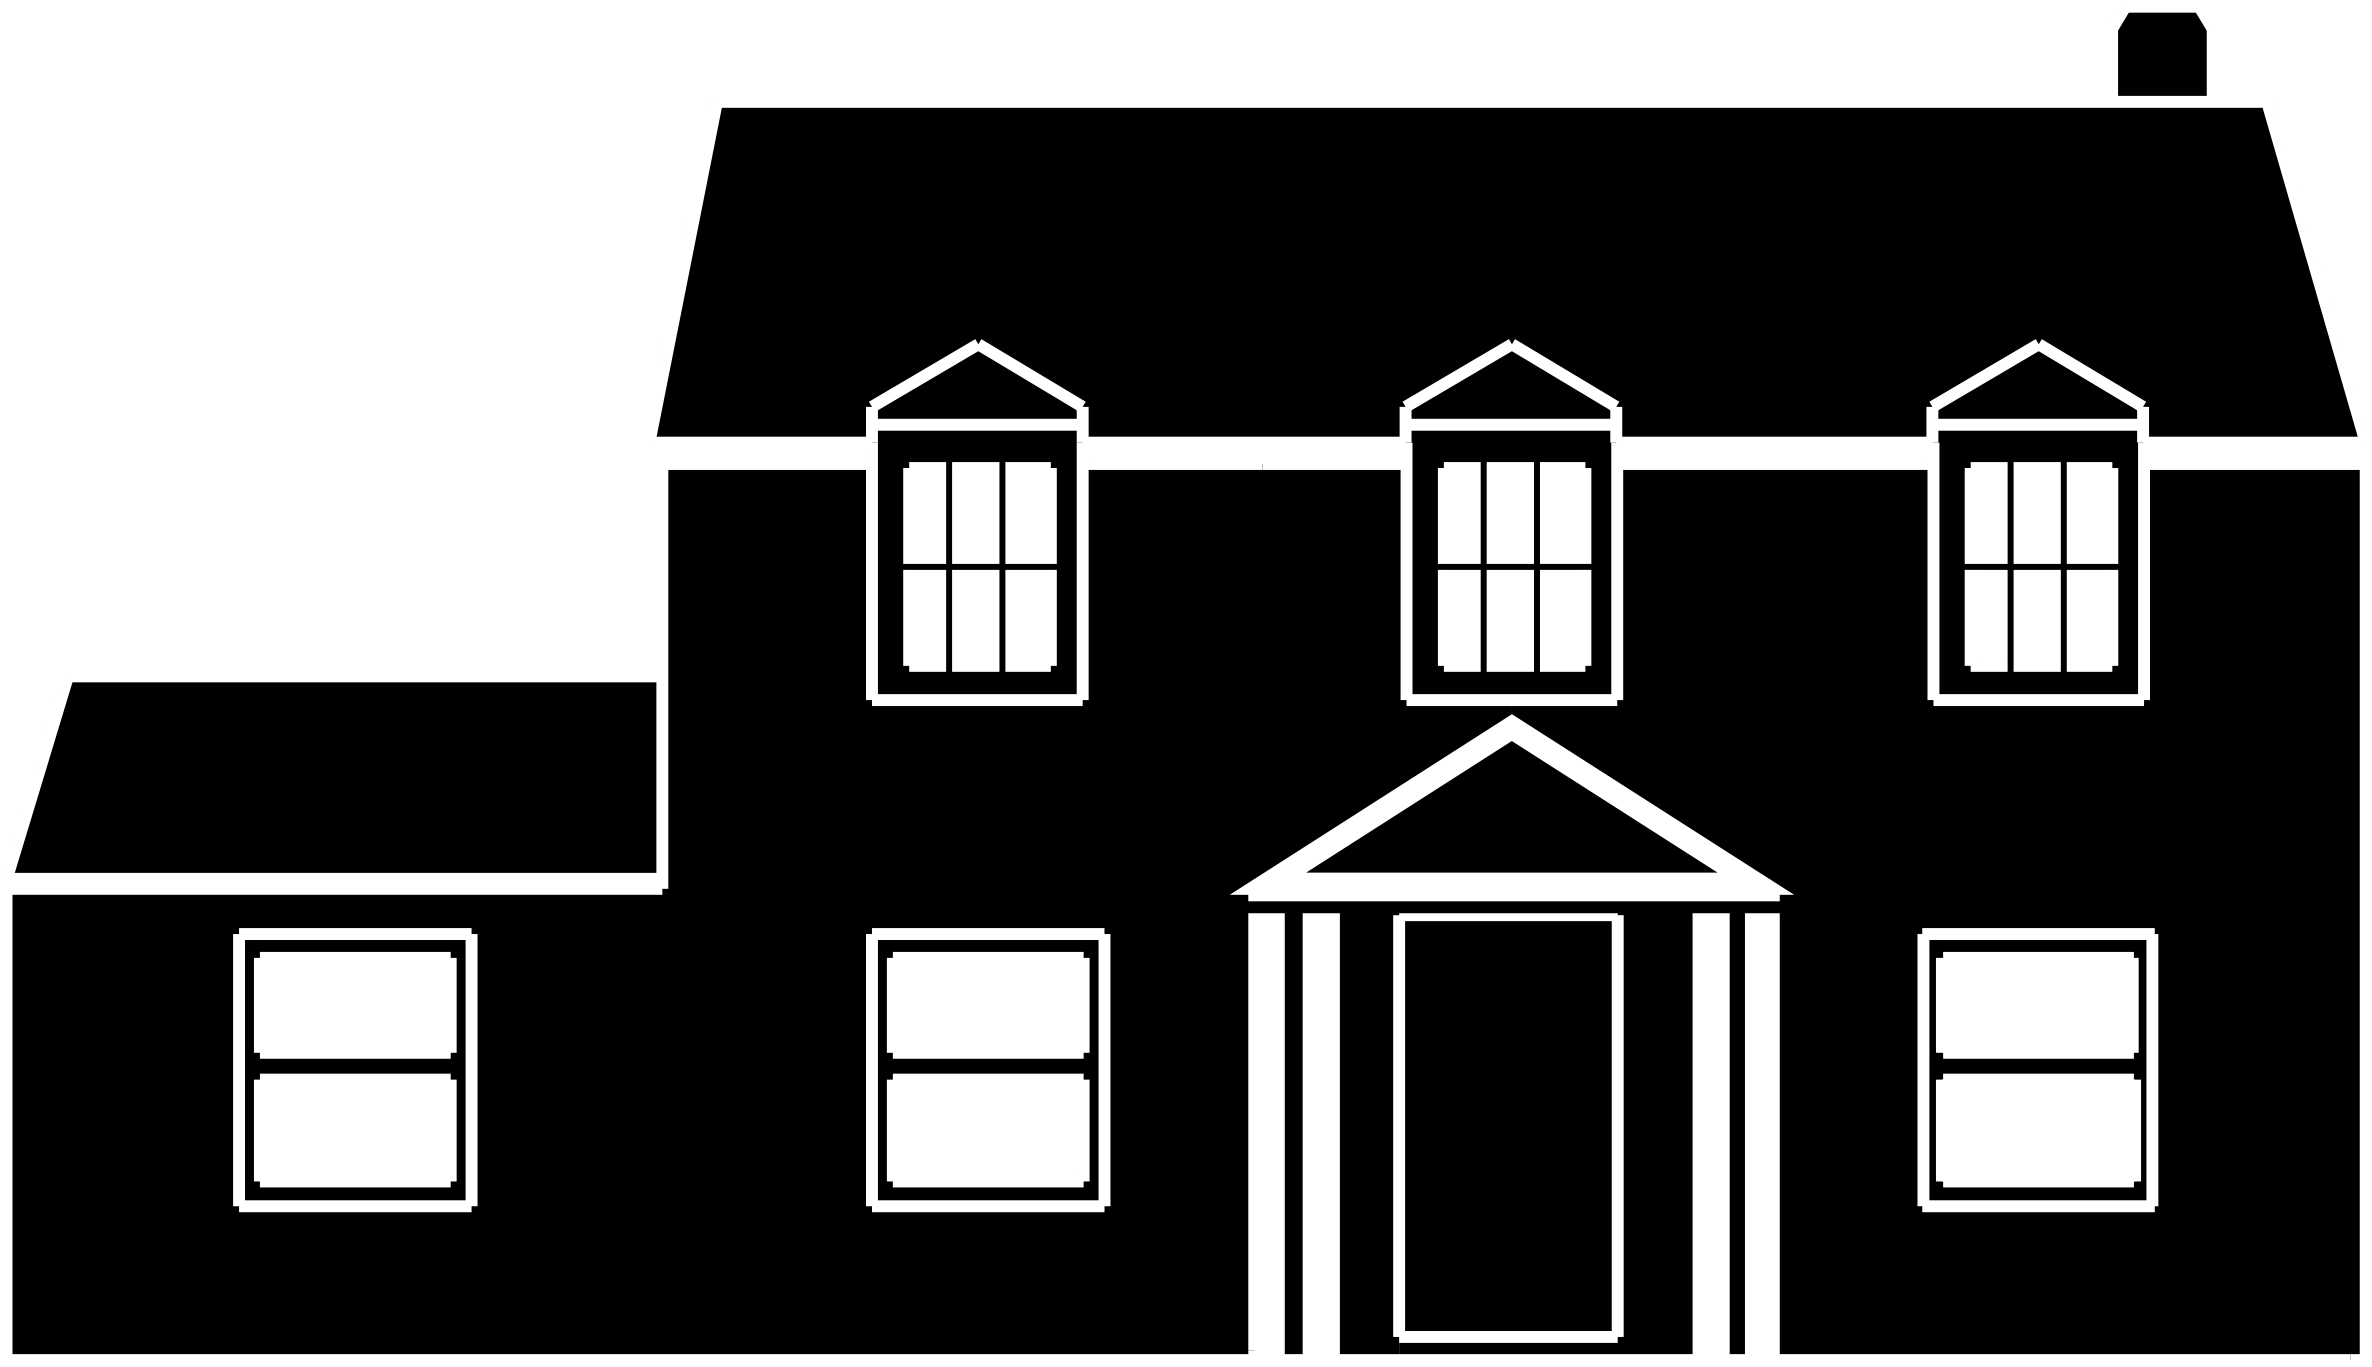 Big House Clipart Black And White.